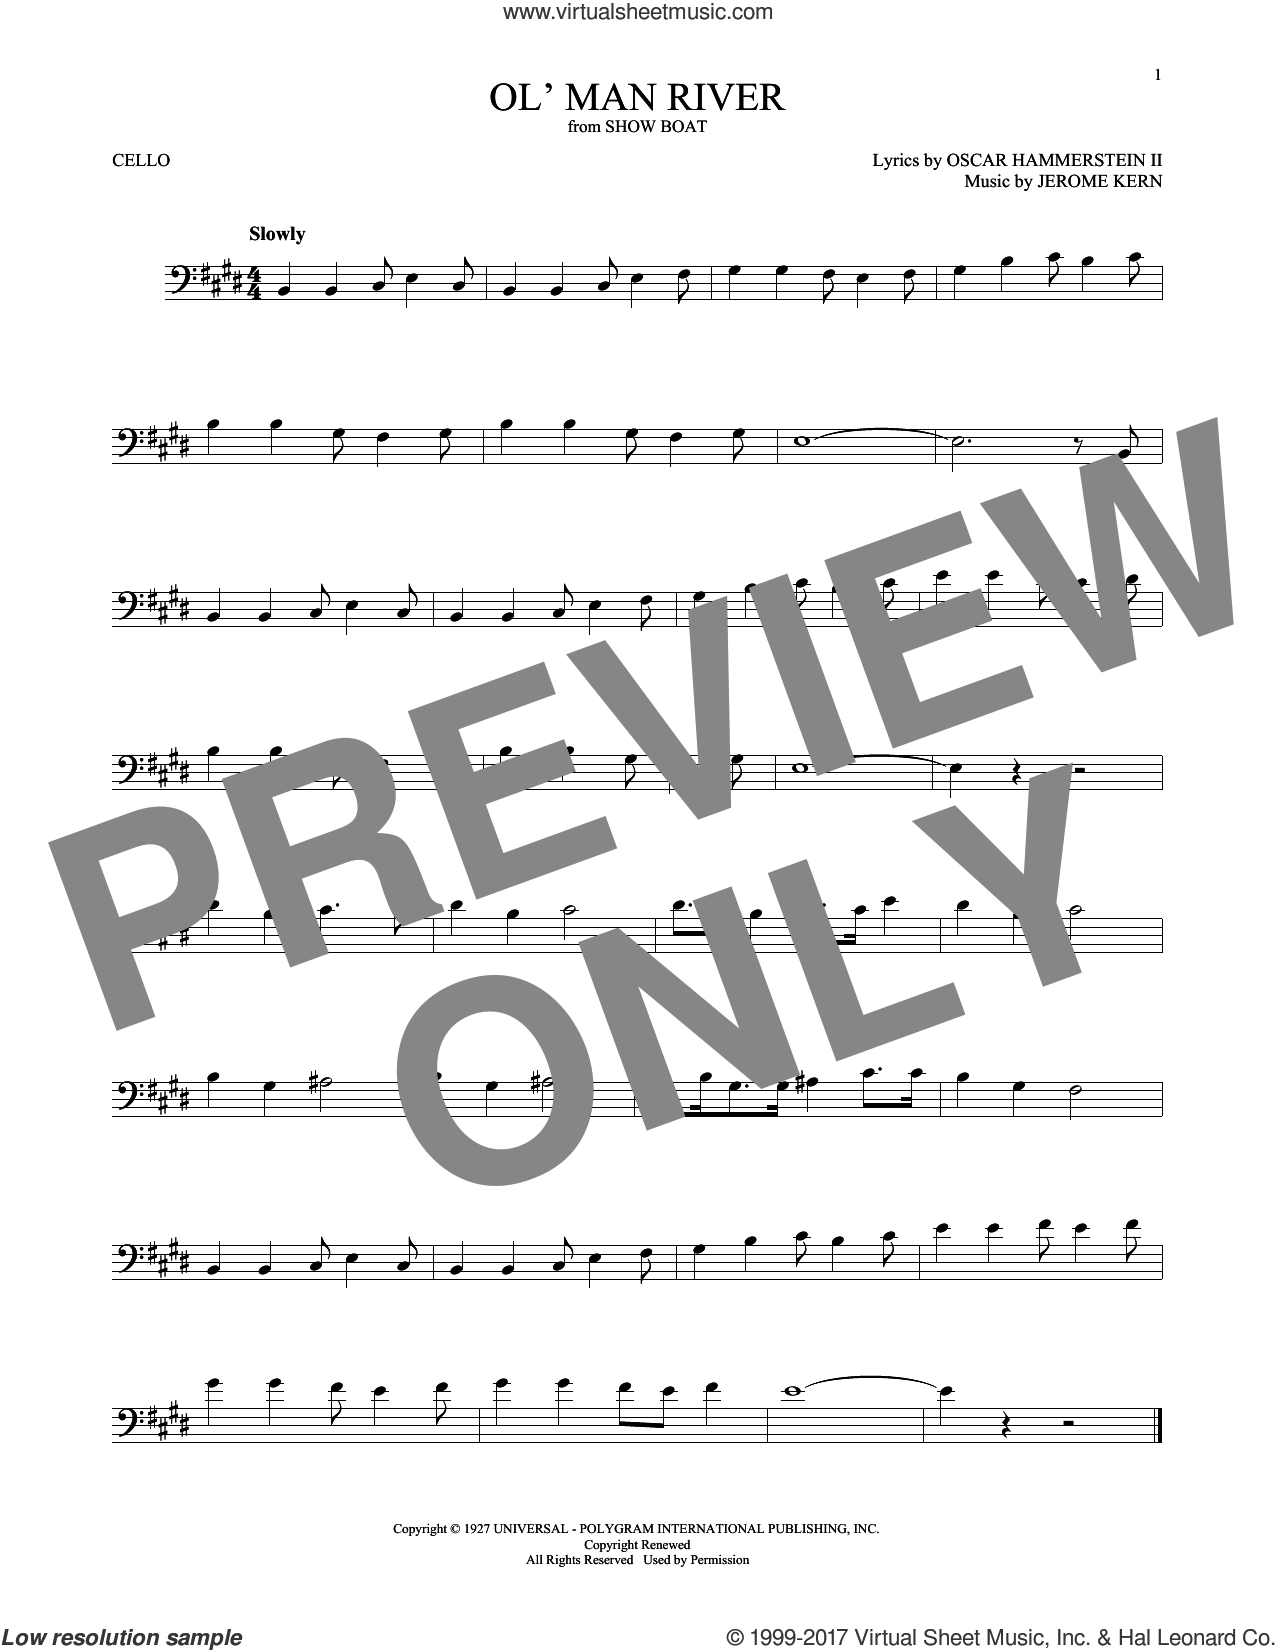 Ol' Man River sheet music for cello solo by Oscar II Hammerstein and Jerome Kern, intermediate skill level